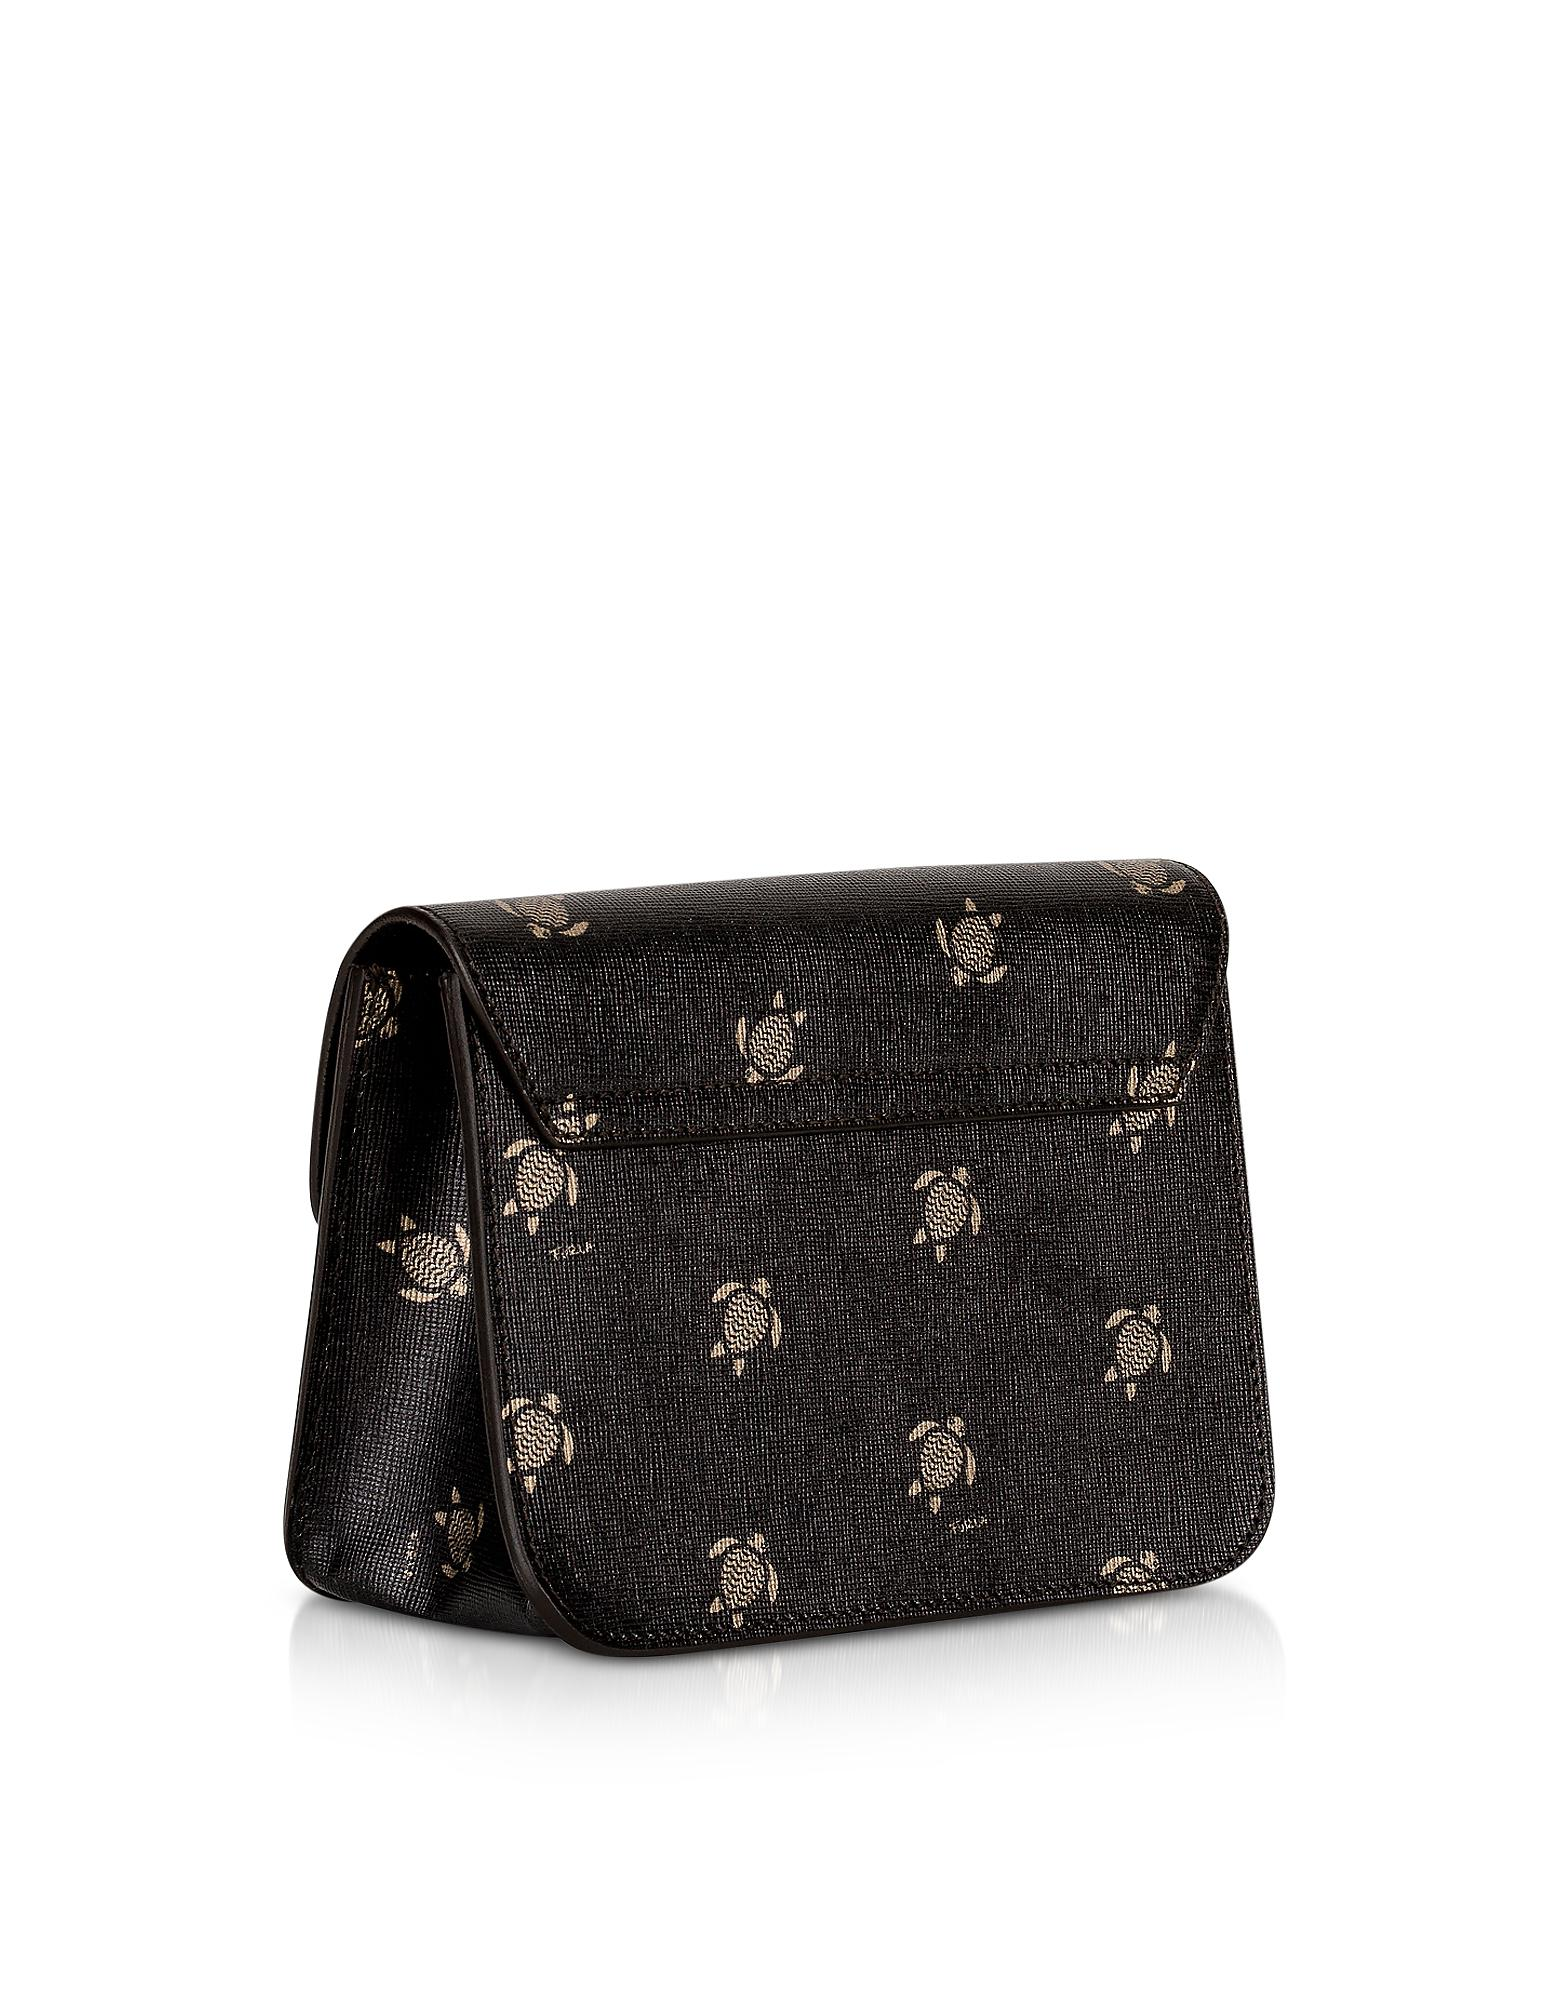 3557a2d755c6 Lyst - Furla Toni Onyx Mini Turtle Printed Saffiano Leather ...